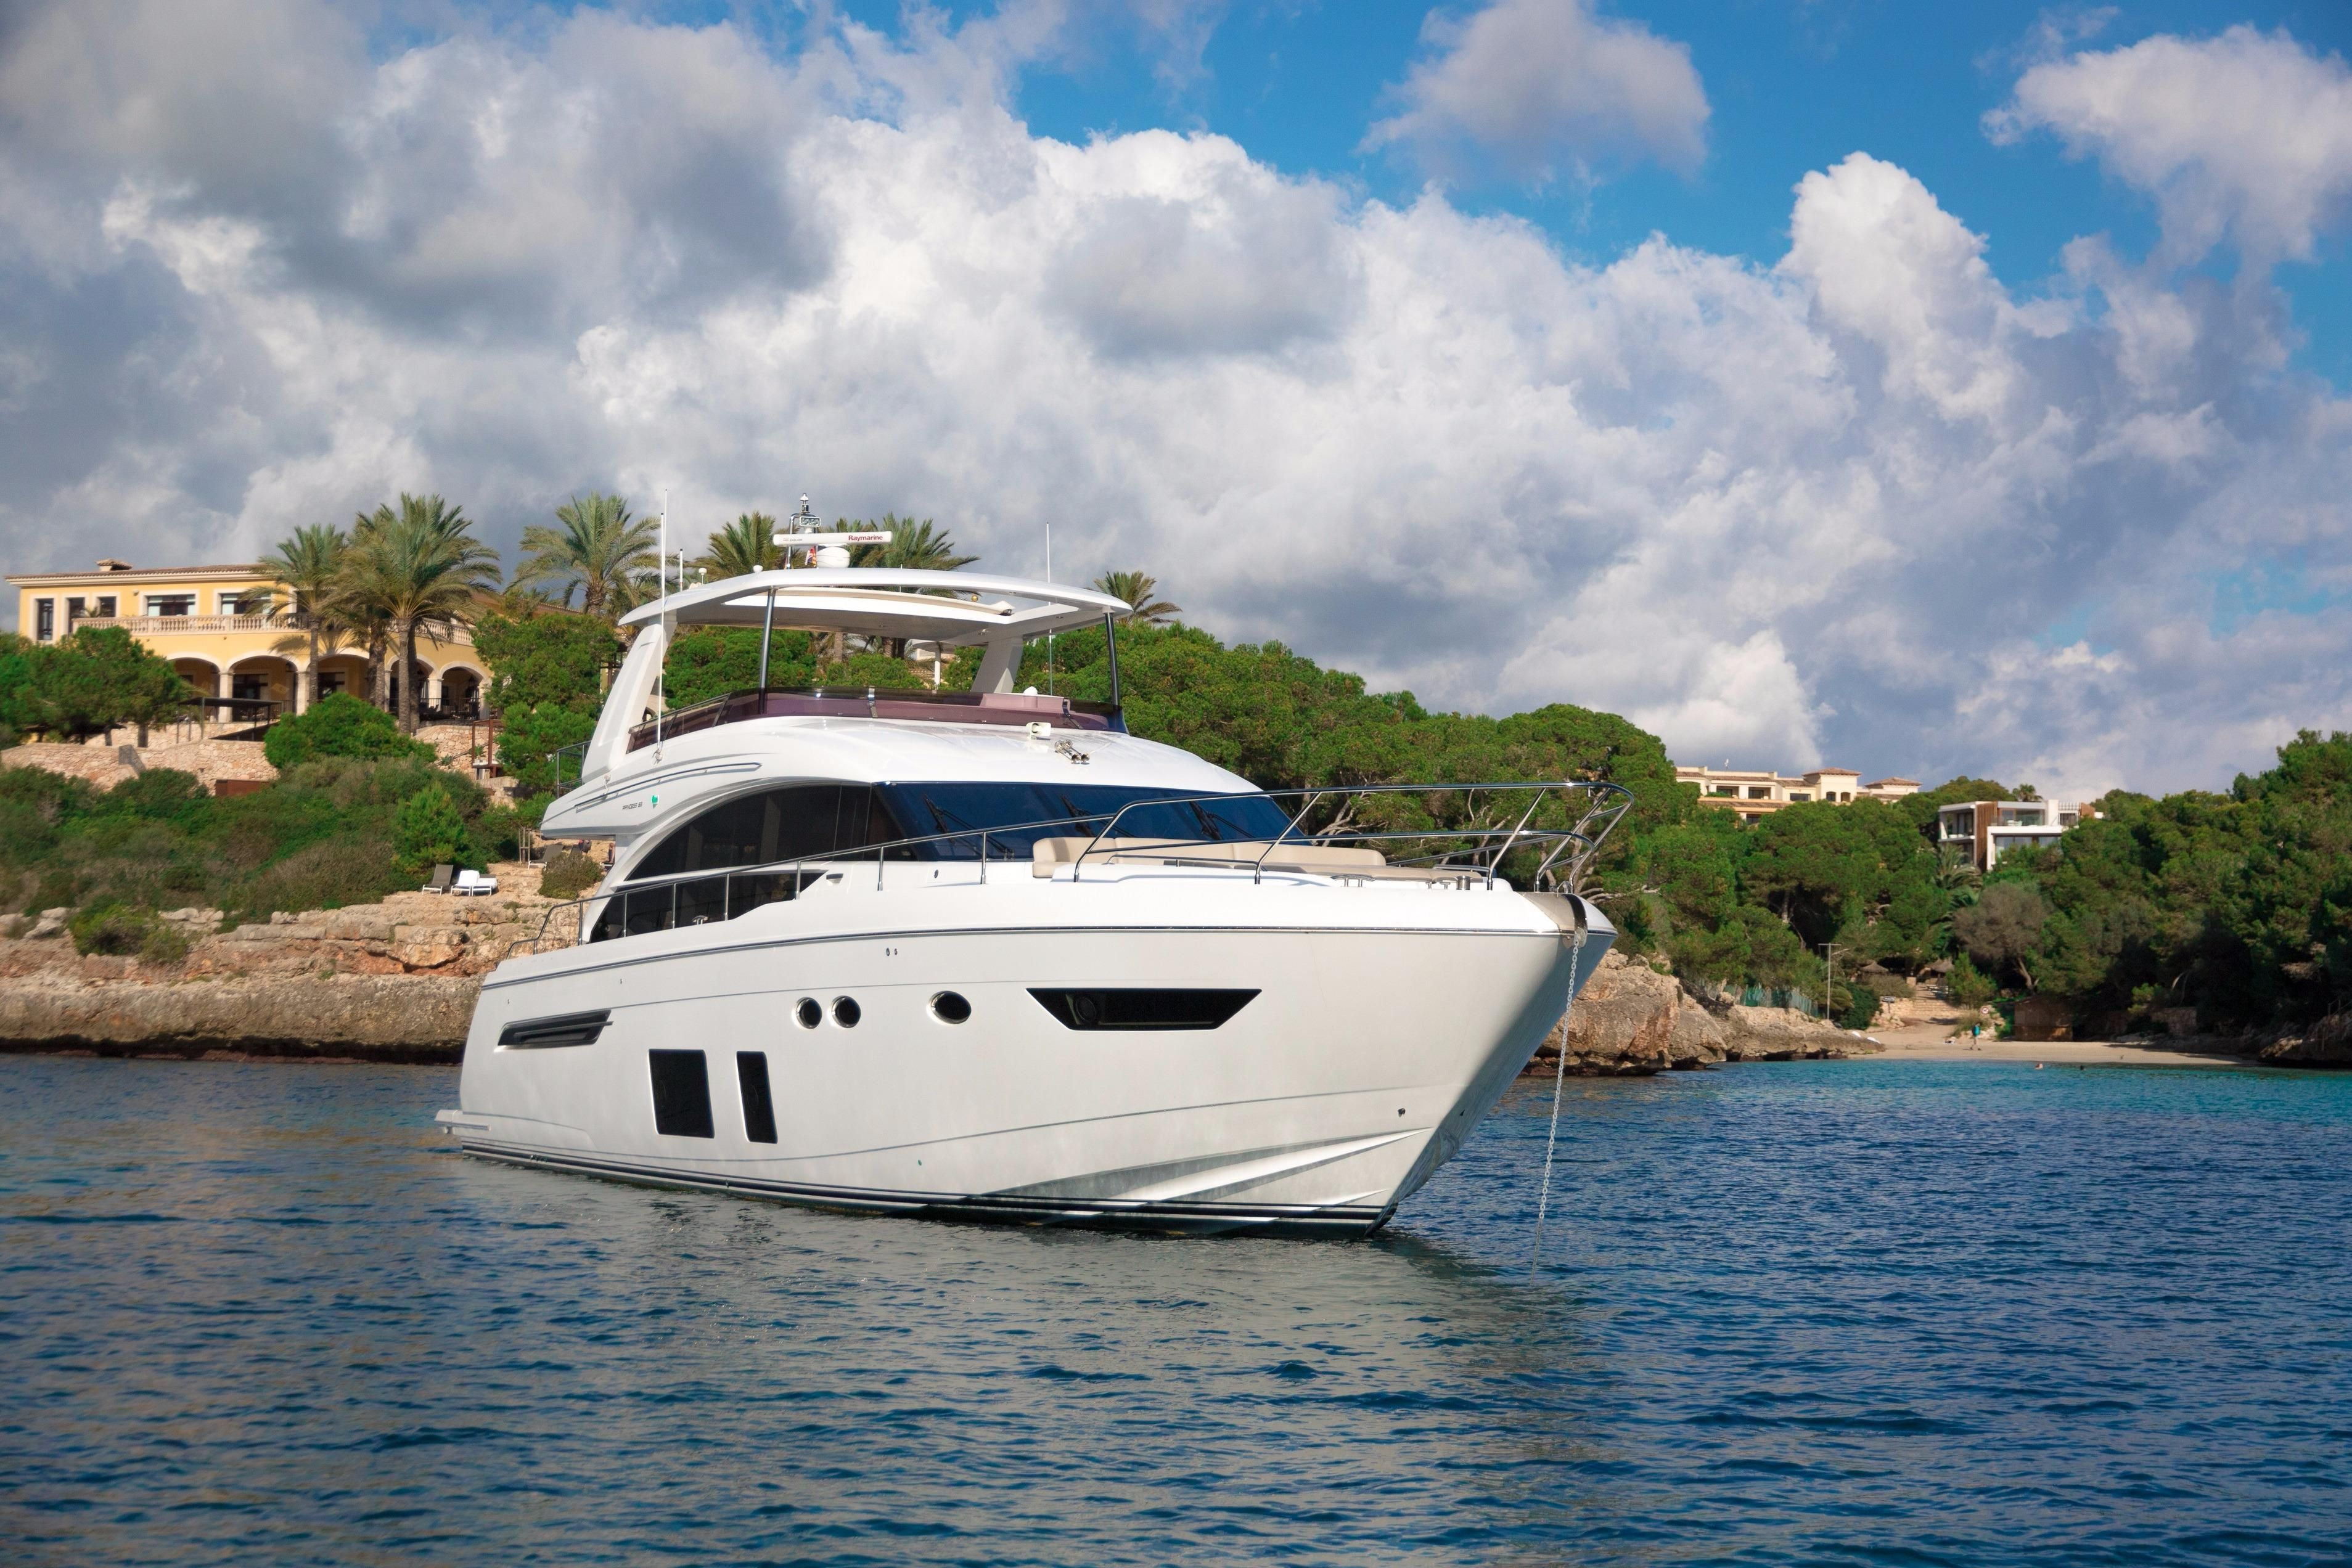 2016 princess 68 power new and used boats for sale www Princess 68 motor yacht